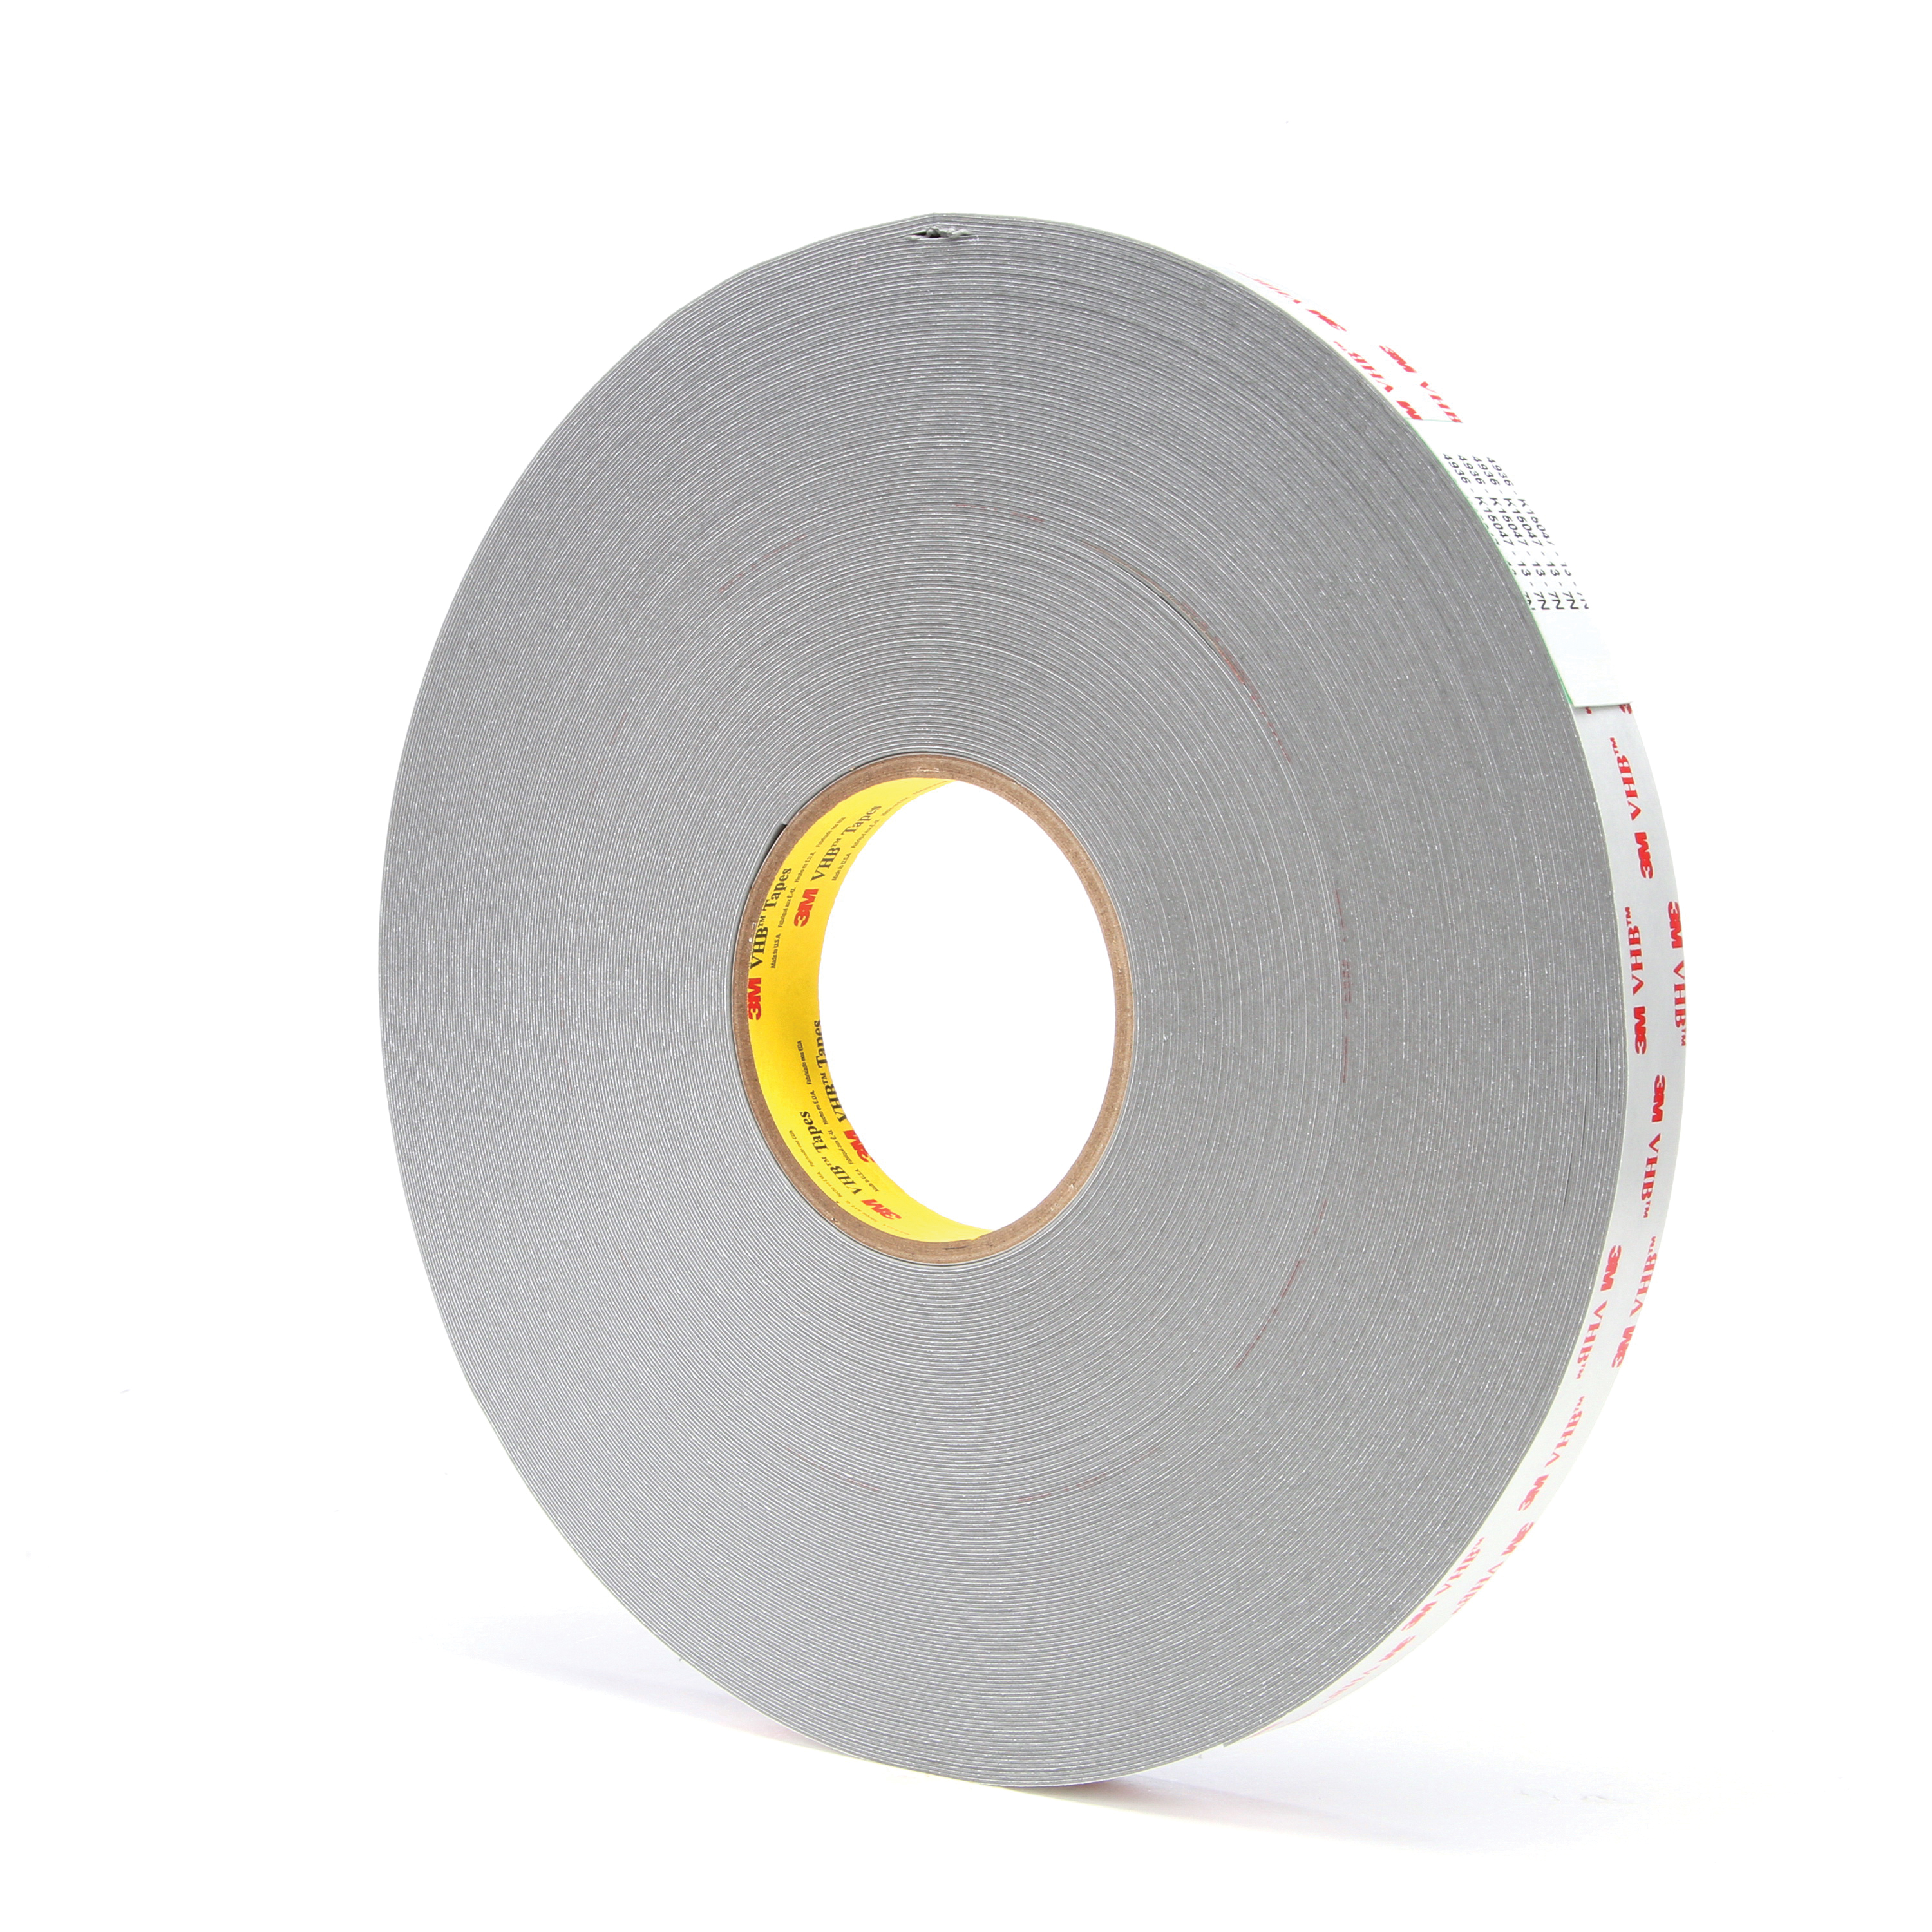 3M™ VHB™ 021200-24384 Pressure Sensitive Double Sided Bonding Tape, 72 yd L x 3/4 in W, 0.025 in THK, Multi-Purpose Acrylic Adhesive, Acrylic Foam Backing, Gray